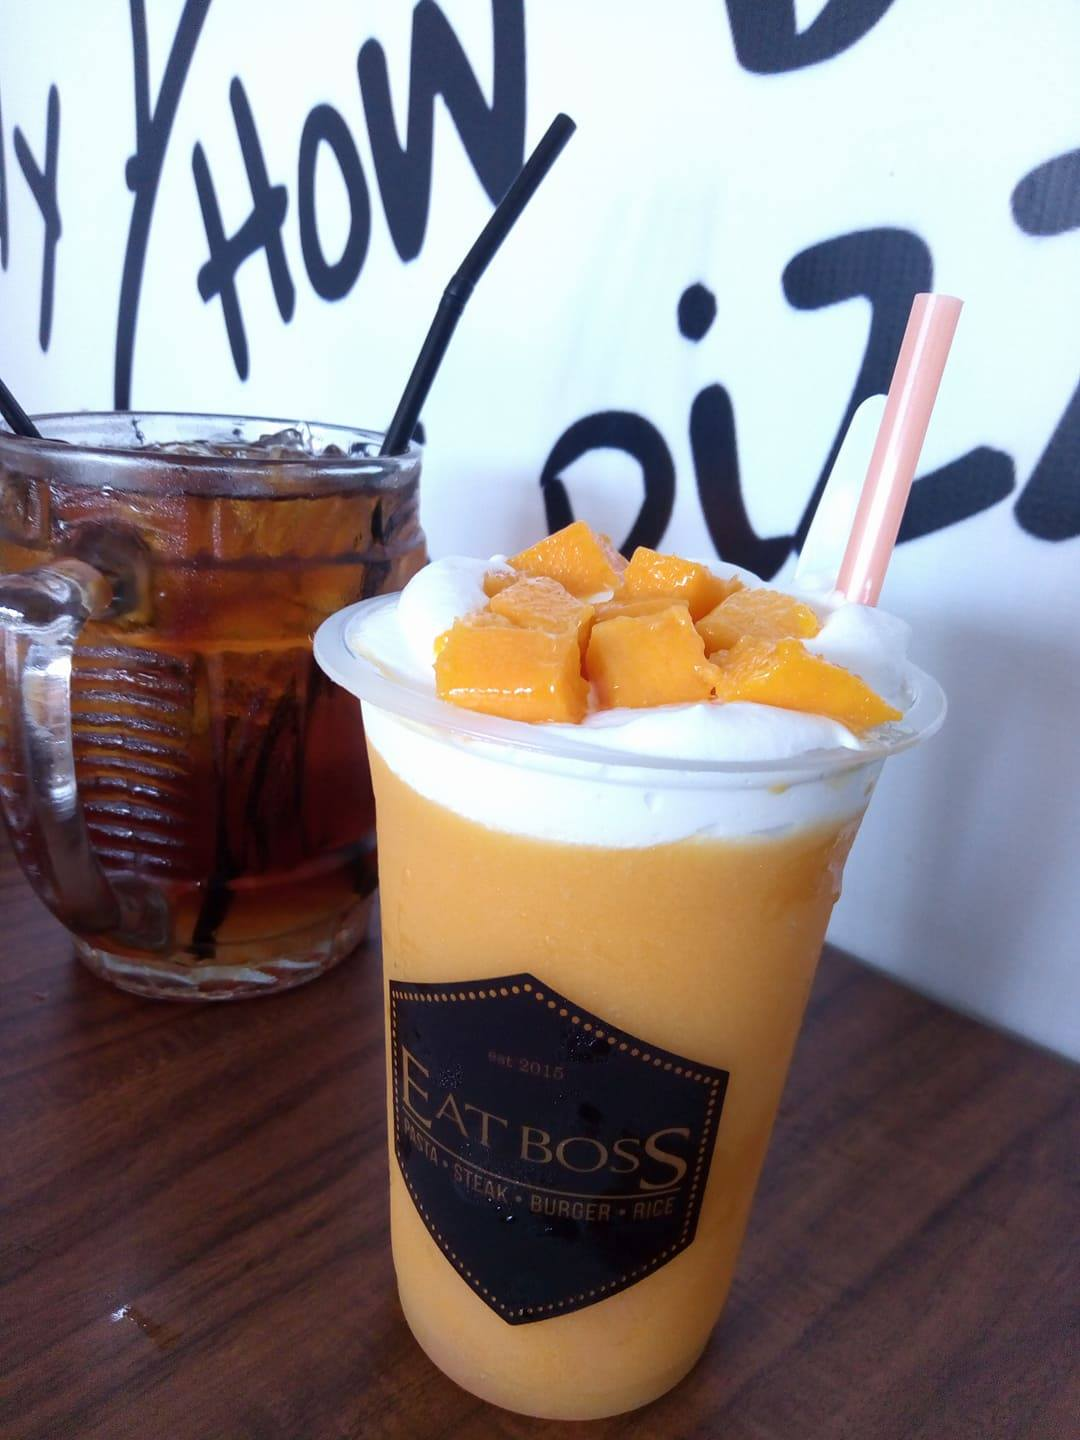 mango boss, mango thai ala eat boss cafe tegal